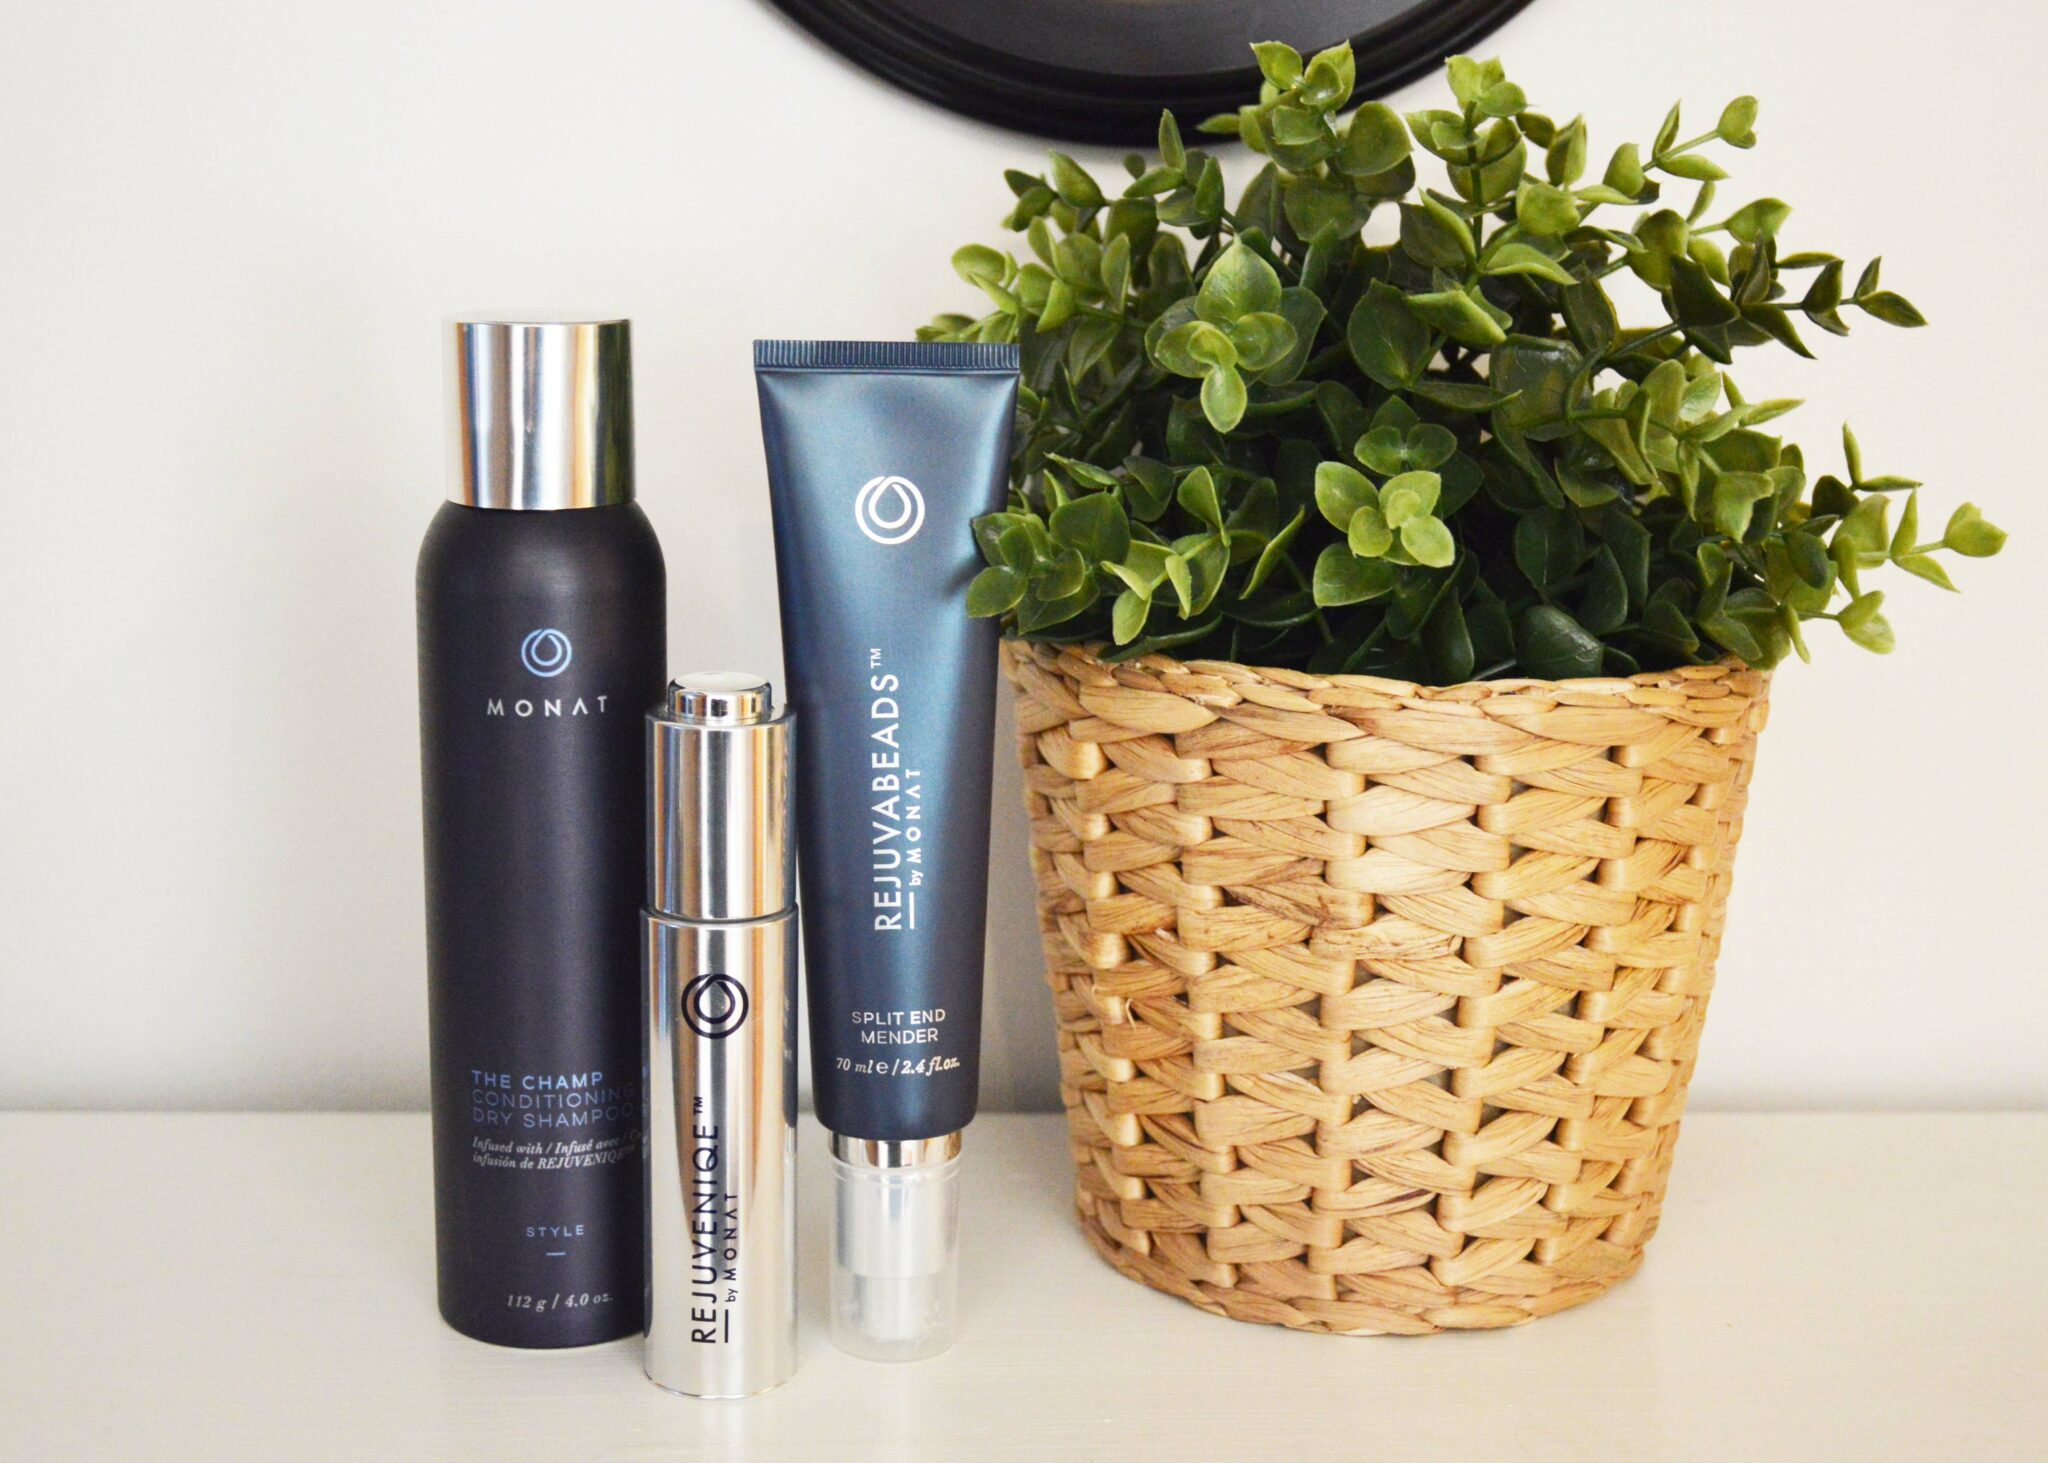 my favorite monat products